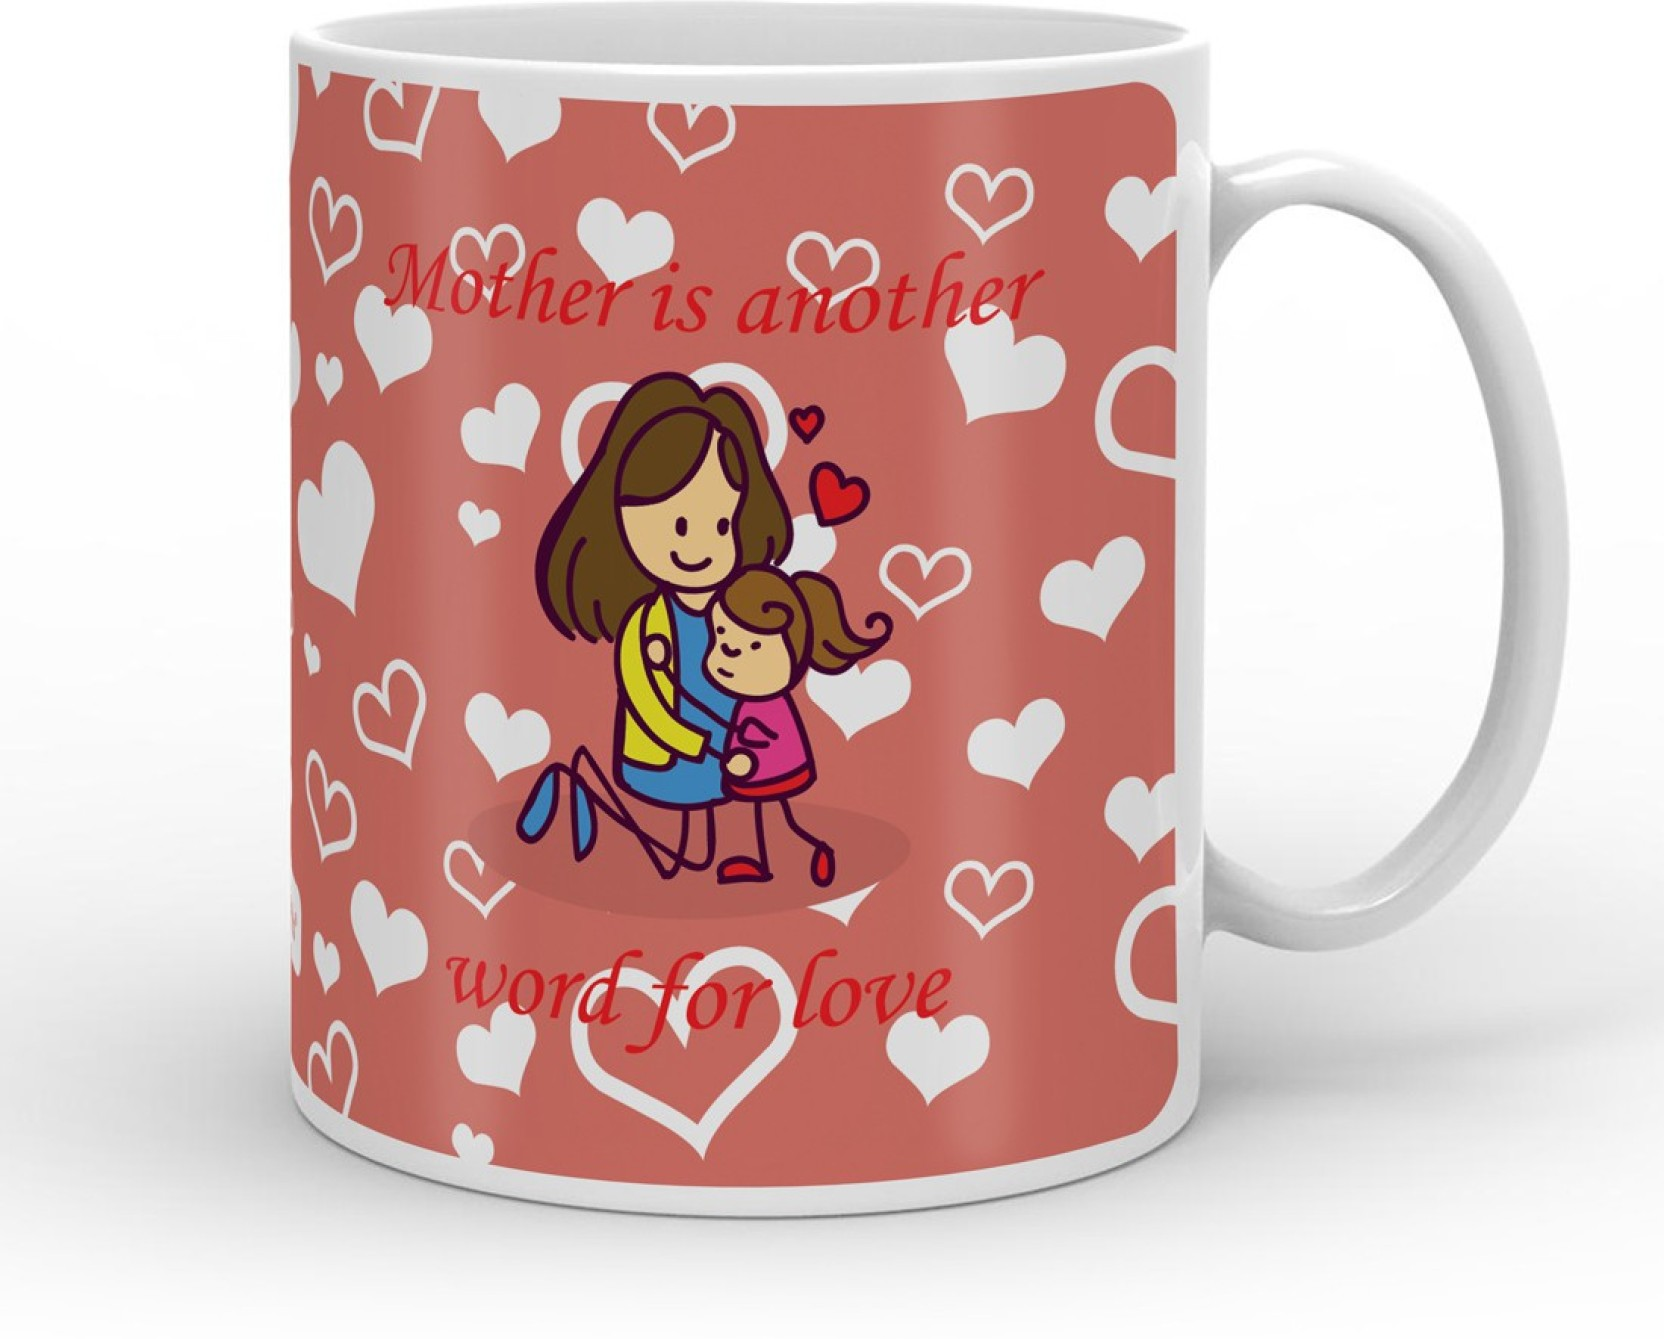 Indigifts Decorative Gift Items Mom Daughter Hugging Mothers Day Special For Mummy Mother In Law Grandmom Best Birthday